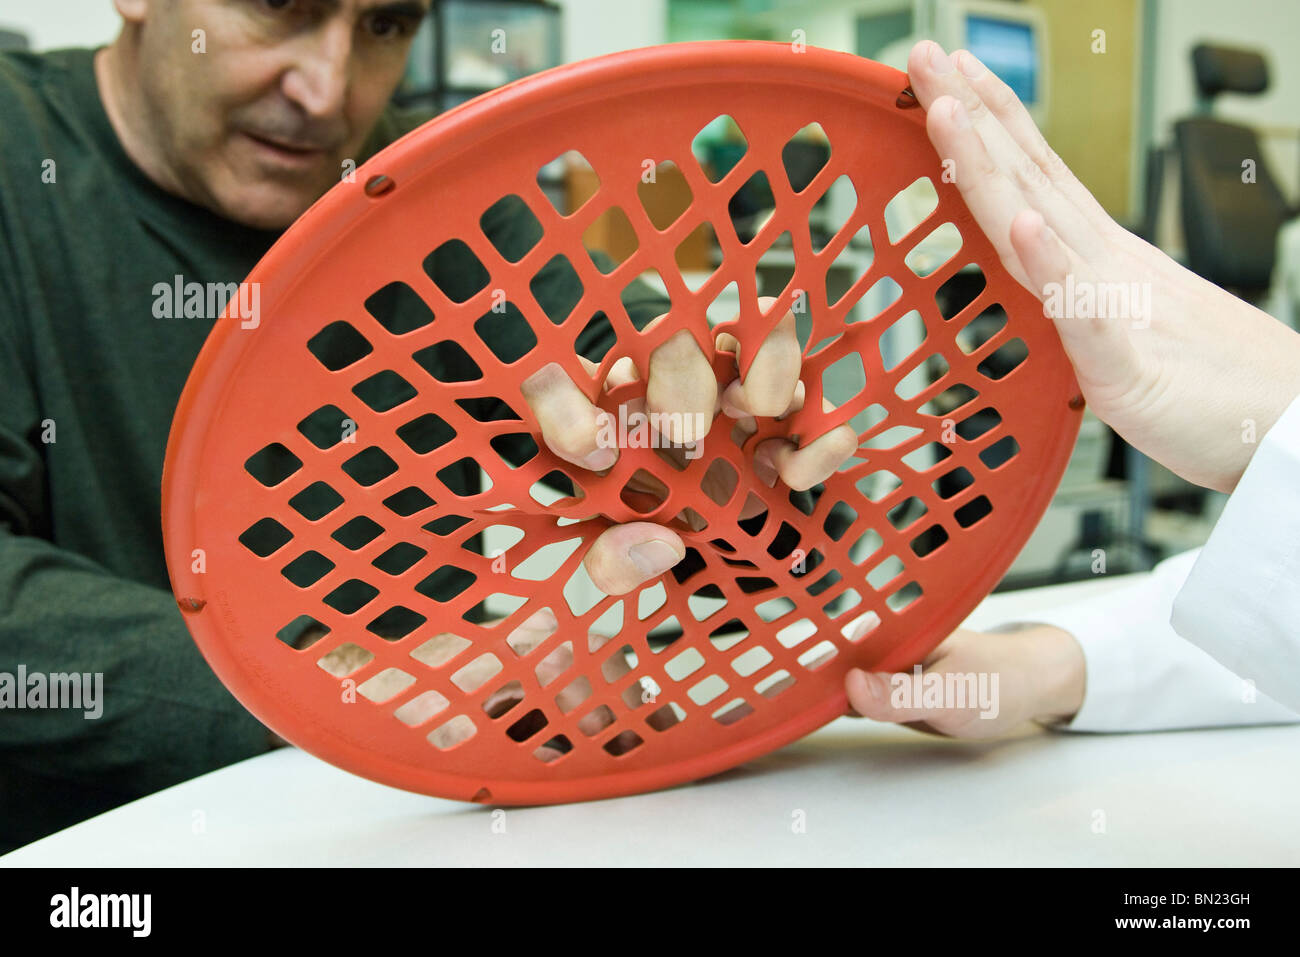 Patient using hand exercise web for occupational therapy treatment - Stock Image